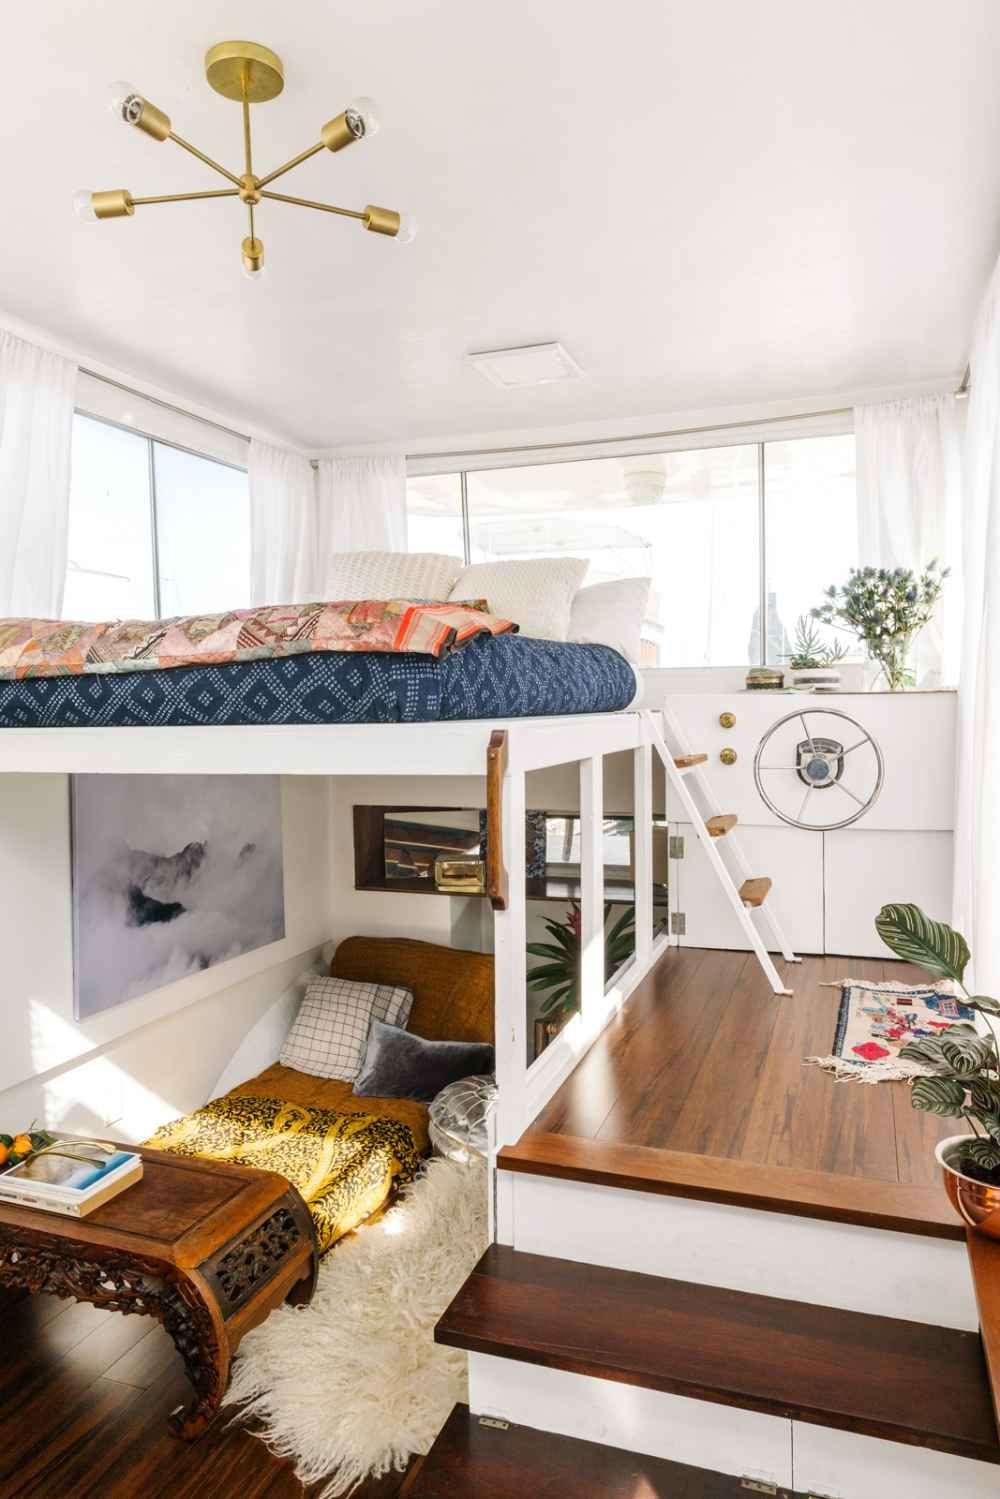 3 bedroom loft  How This Woman Made Her Dream Home On A Boat  Tiny houses House